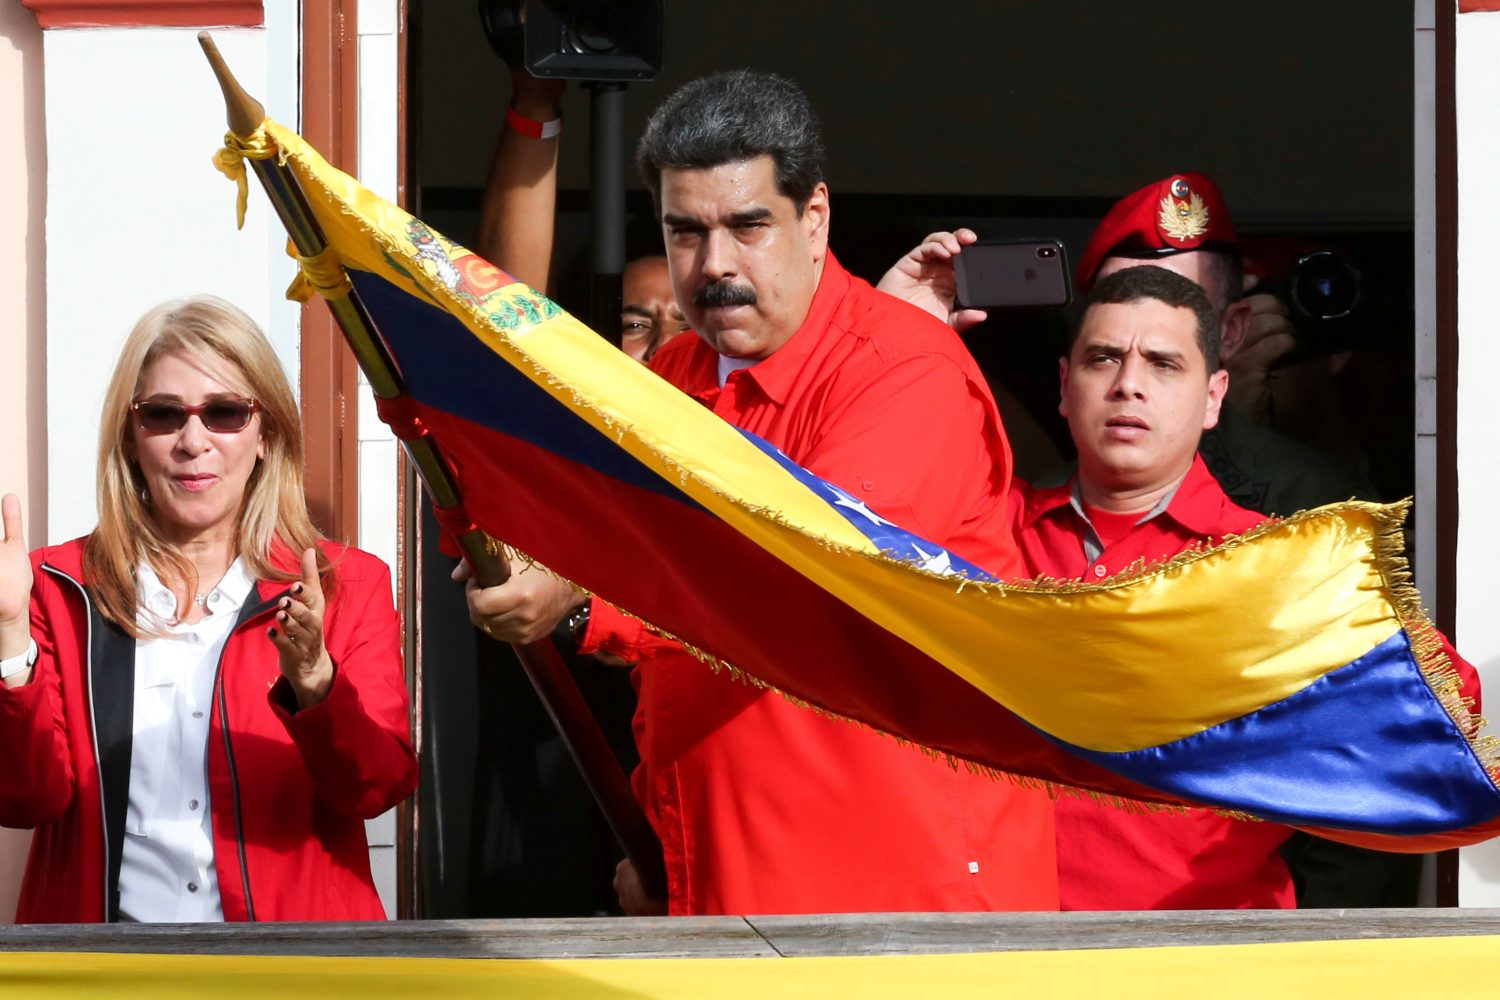 FILE PHOTO: Venezuela's President Nicolas Maduro attends a rally in support of his government and to commemorate the 61st anniversary of the end of the dictatorship of Marcos Perez Jimenez next to his wife Cilia Flores in Caracas, Venezuela January 23, 2019. Miraflores Palace/Handout via REUTERS/File Photo